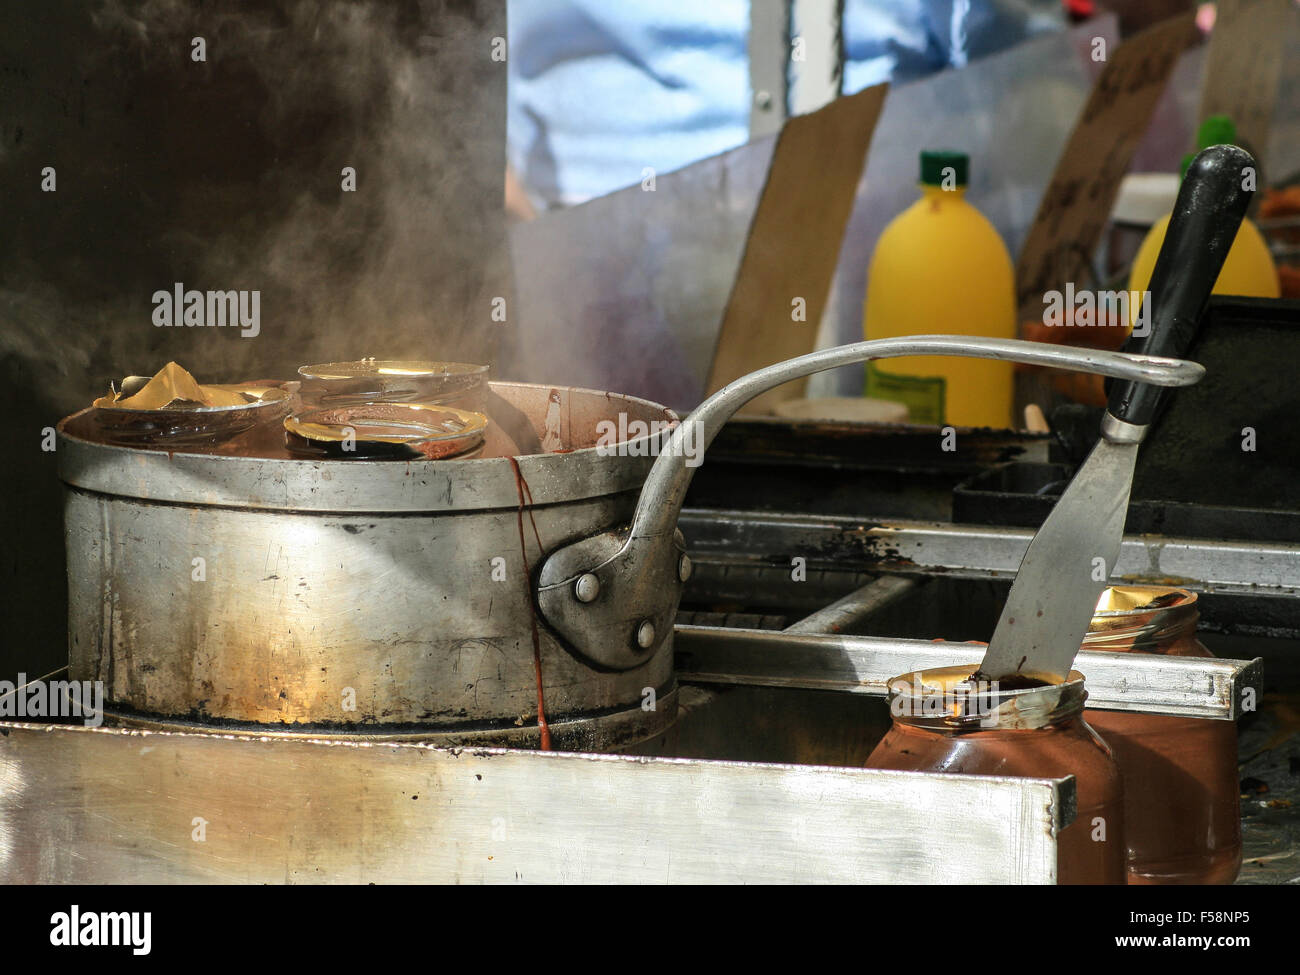 A basic cooking set up in a mobile kitchen with a pan of hot food simmering on a cooker Stock Photo